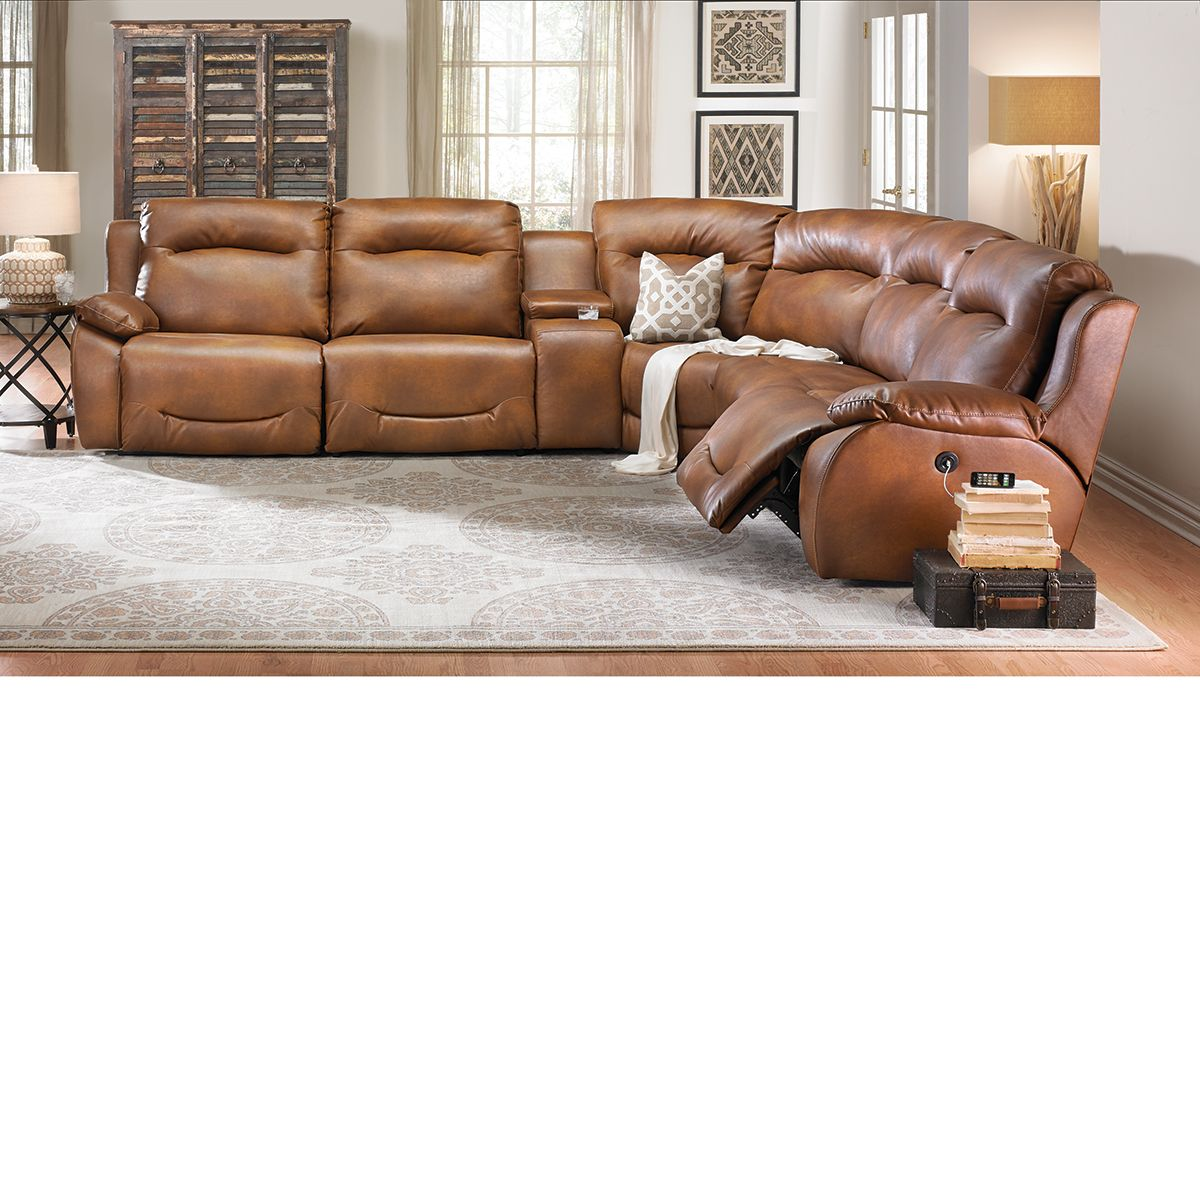 dump sectional outlet furniture power plus decor visit sofa closeout living room piece couches